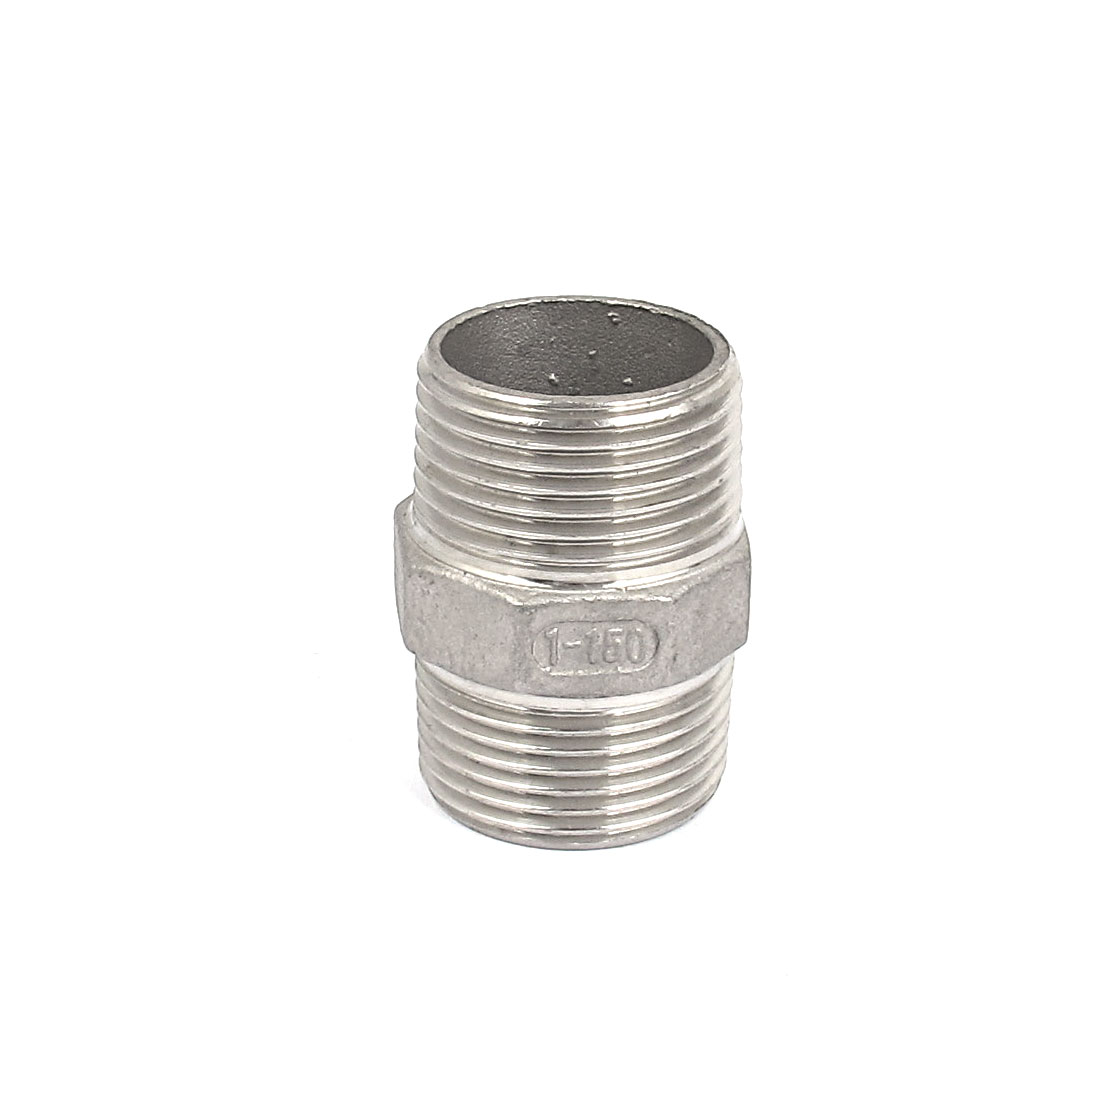 1 BSP to 1 BSP Male Thread Hex Nipple Quick Coupler Silver Tone